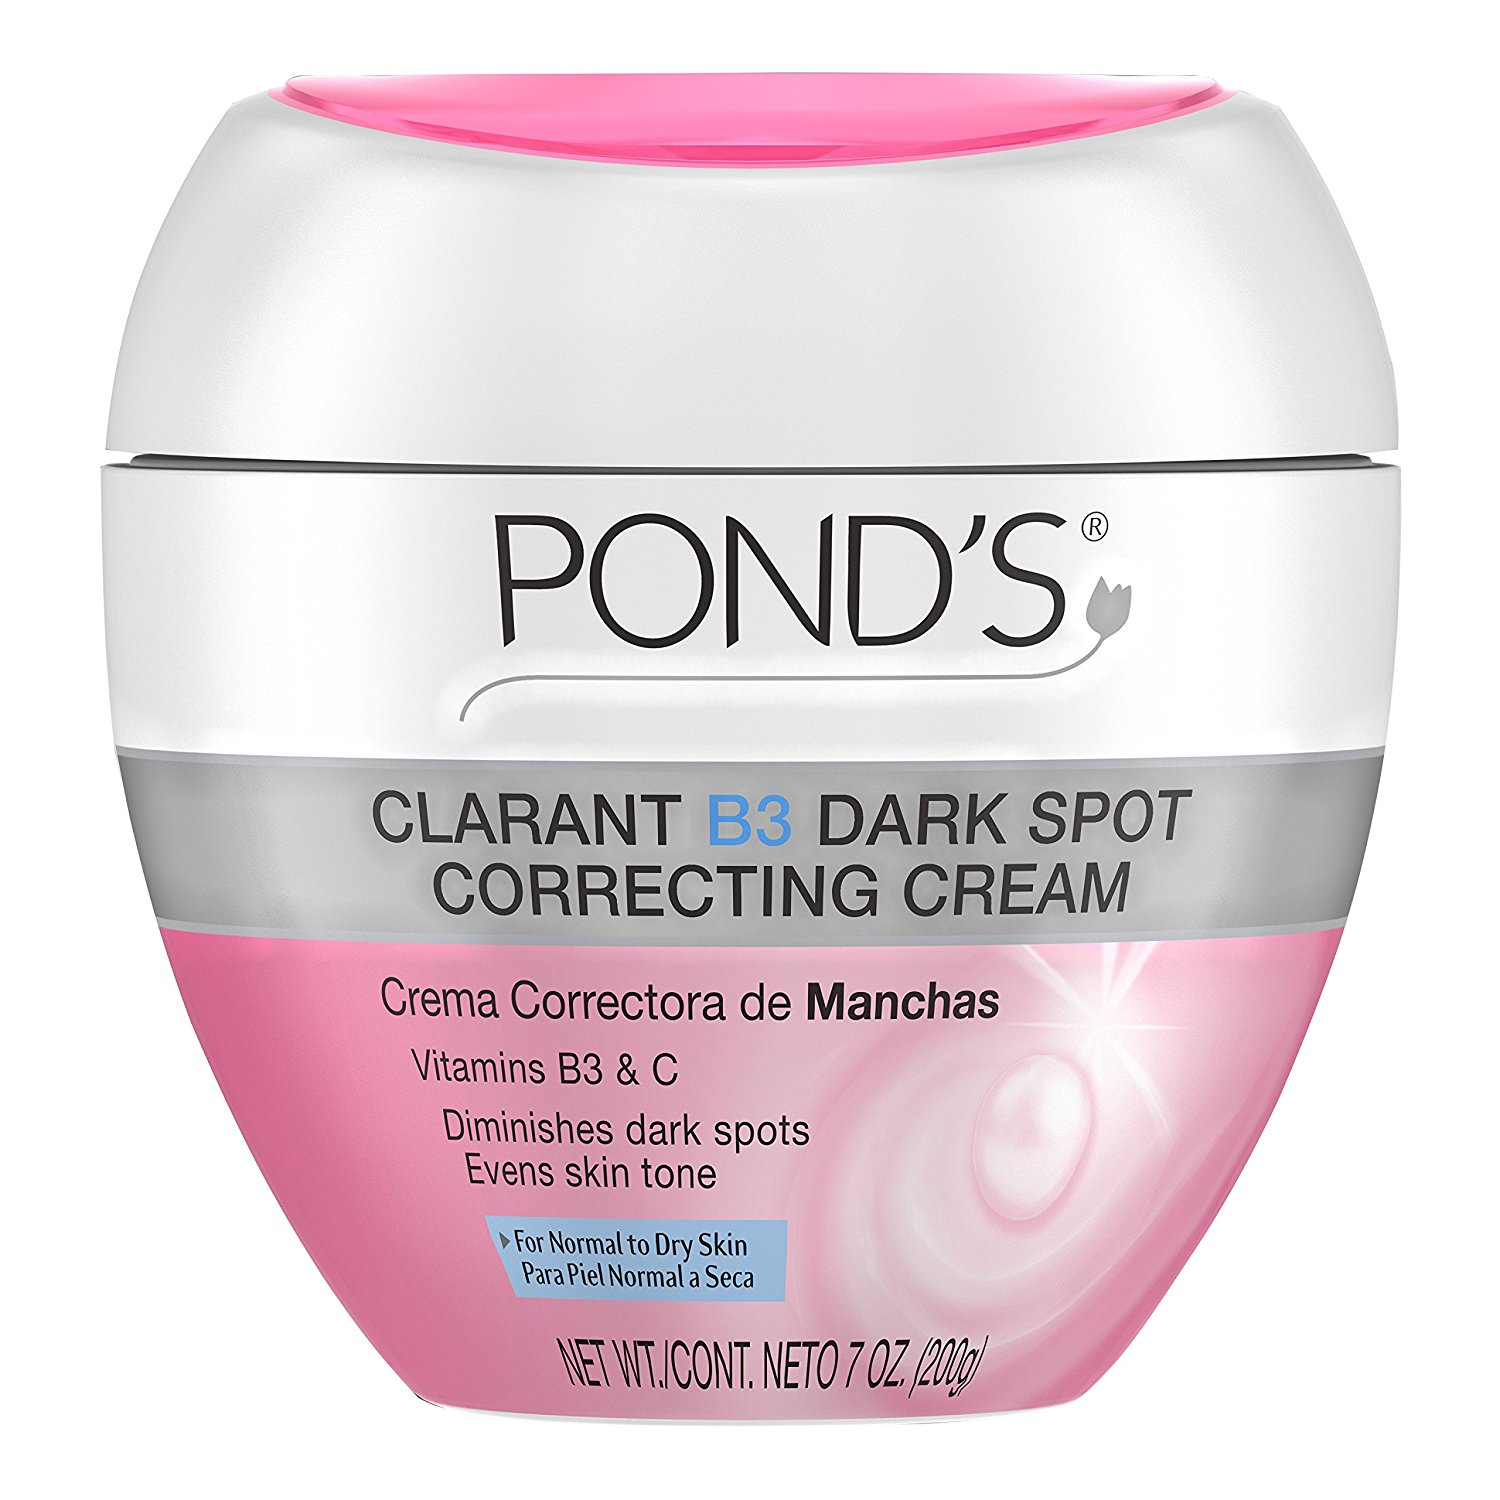 Pond's Clarant B3 Normal To Dry Skin Correcting Cream